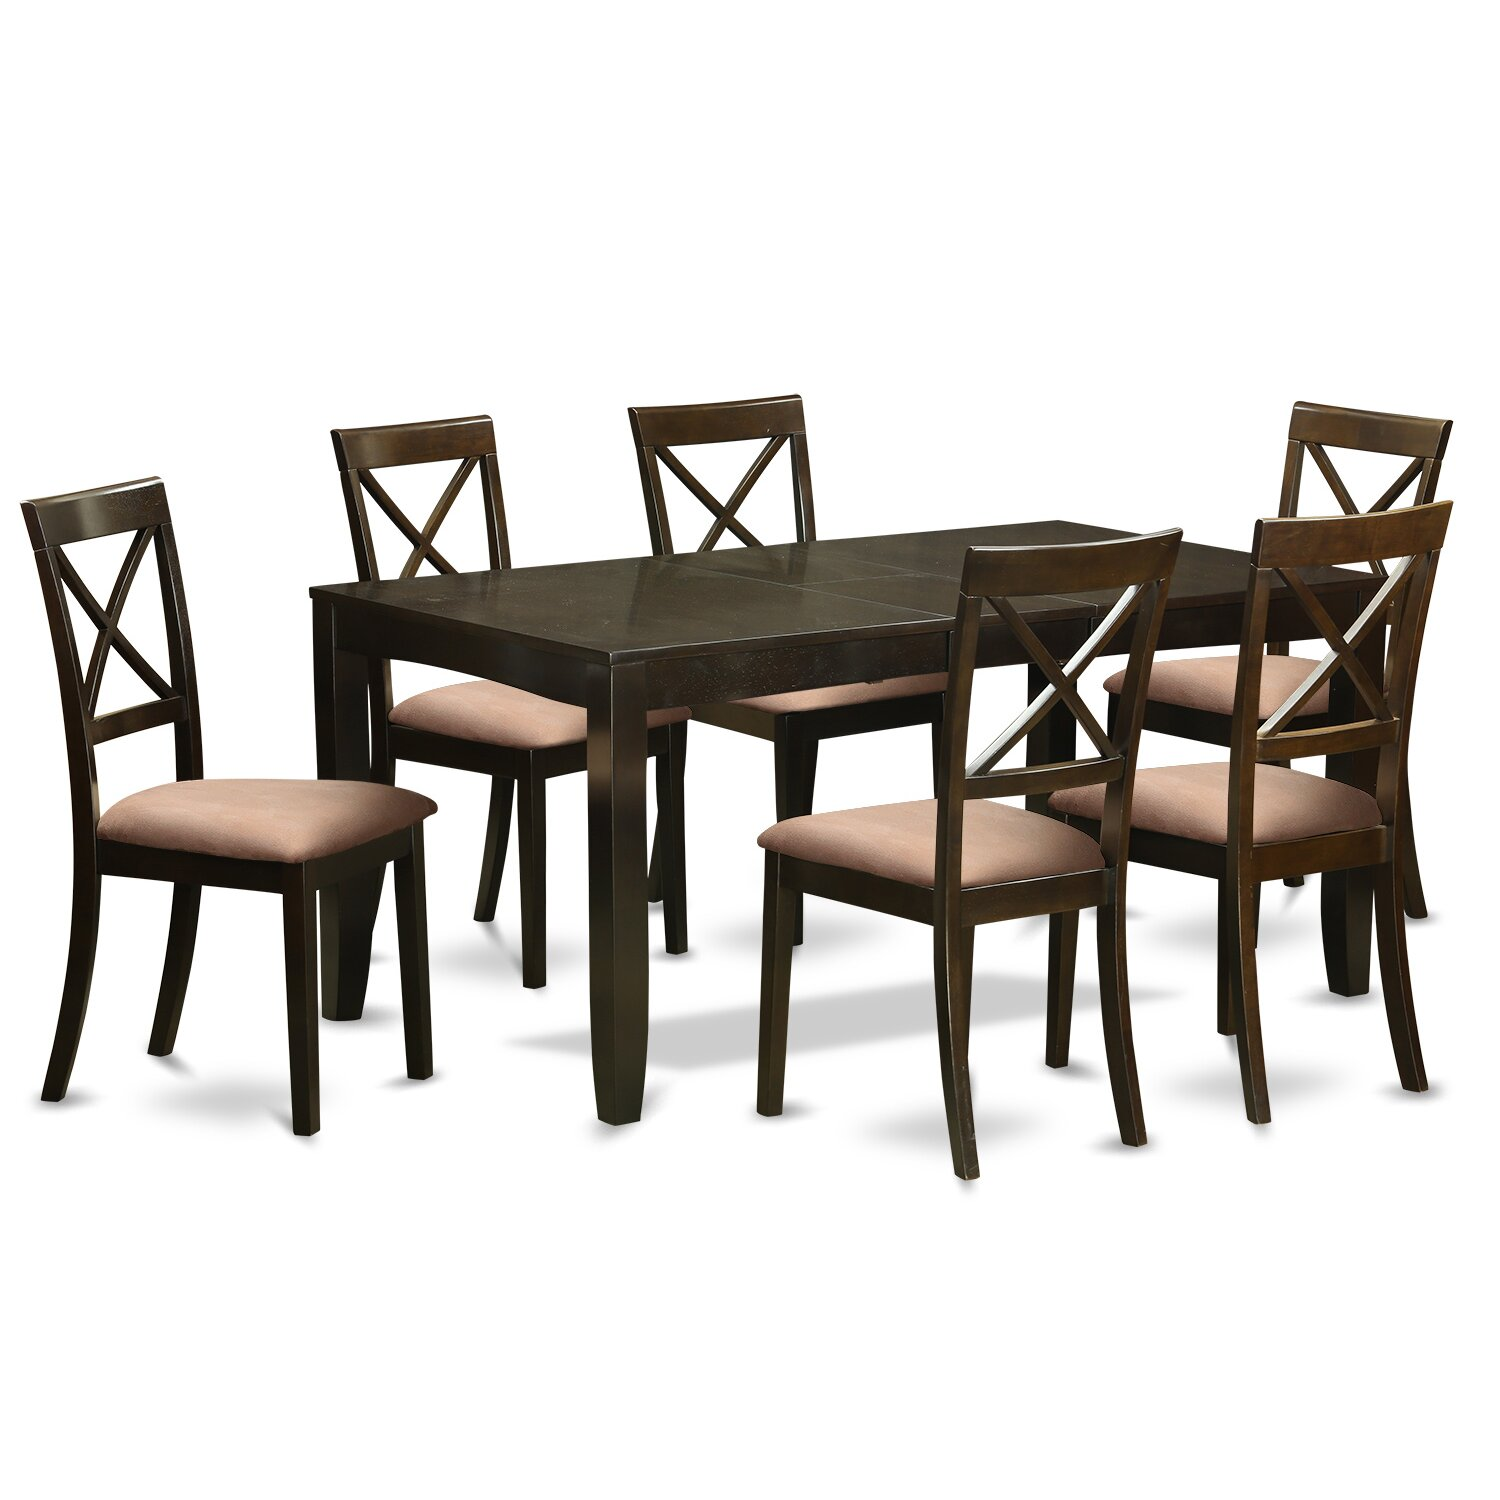 East west lynfield 7 piece dining set reviews wayfair for Kitchen table set 6 chairs